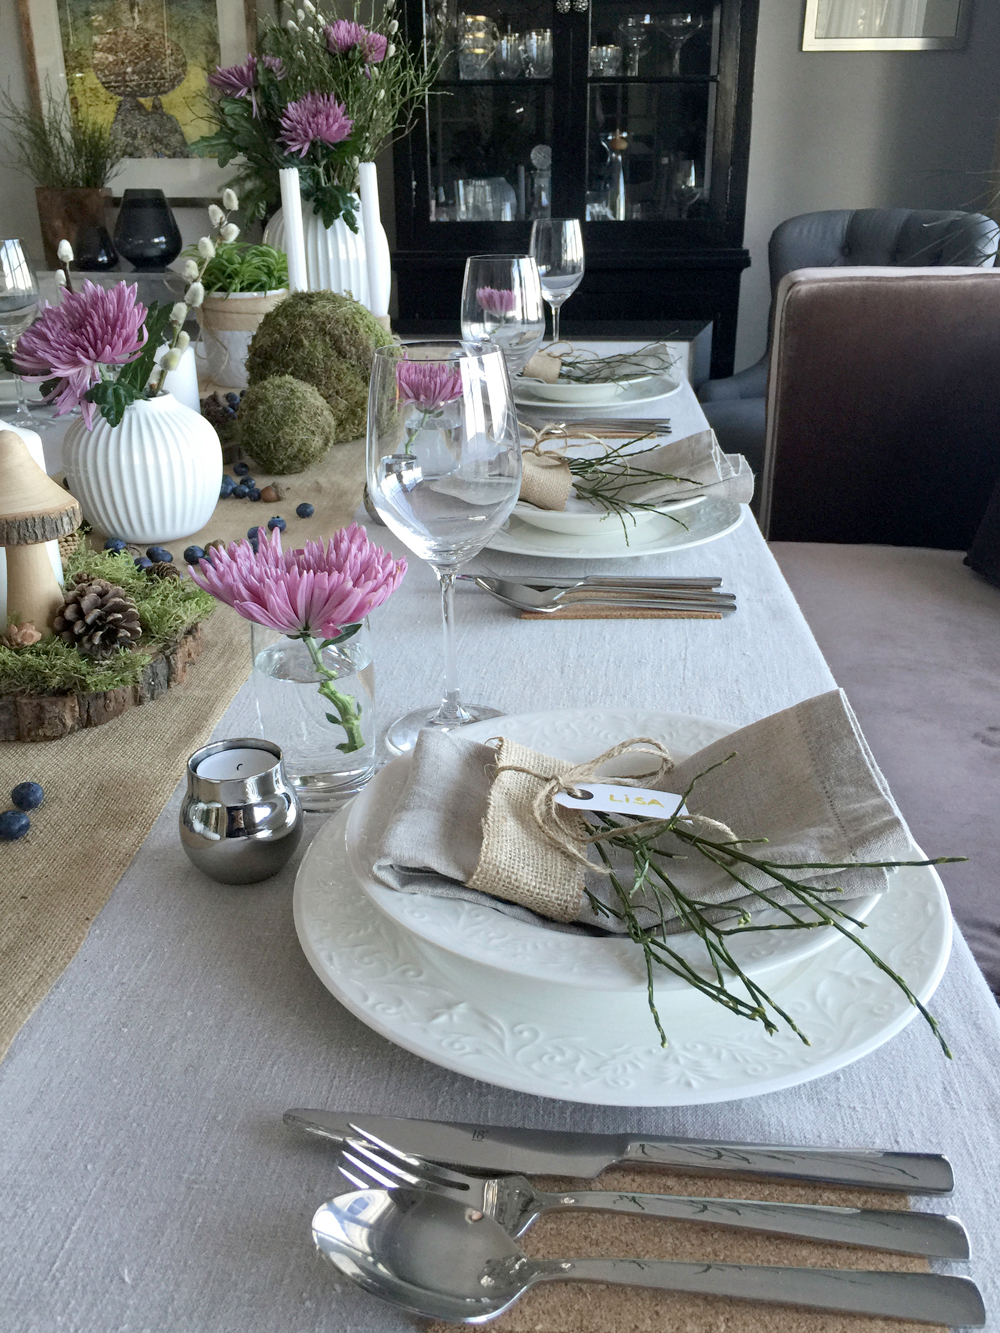 Konfirmasjon-natur- borddekking tablesetting3